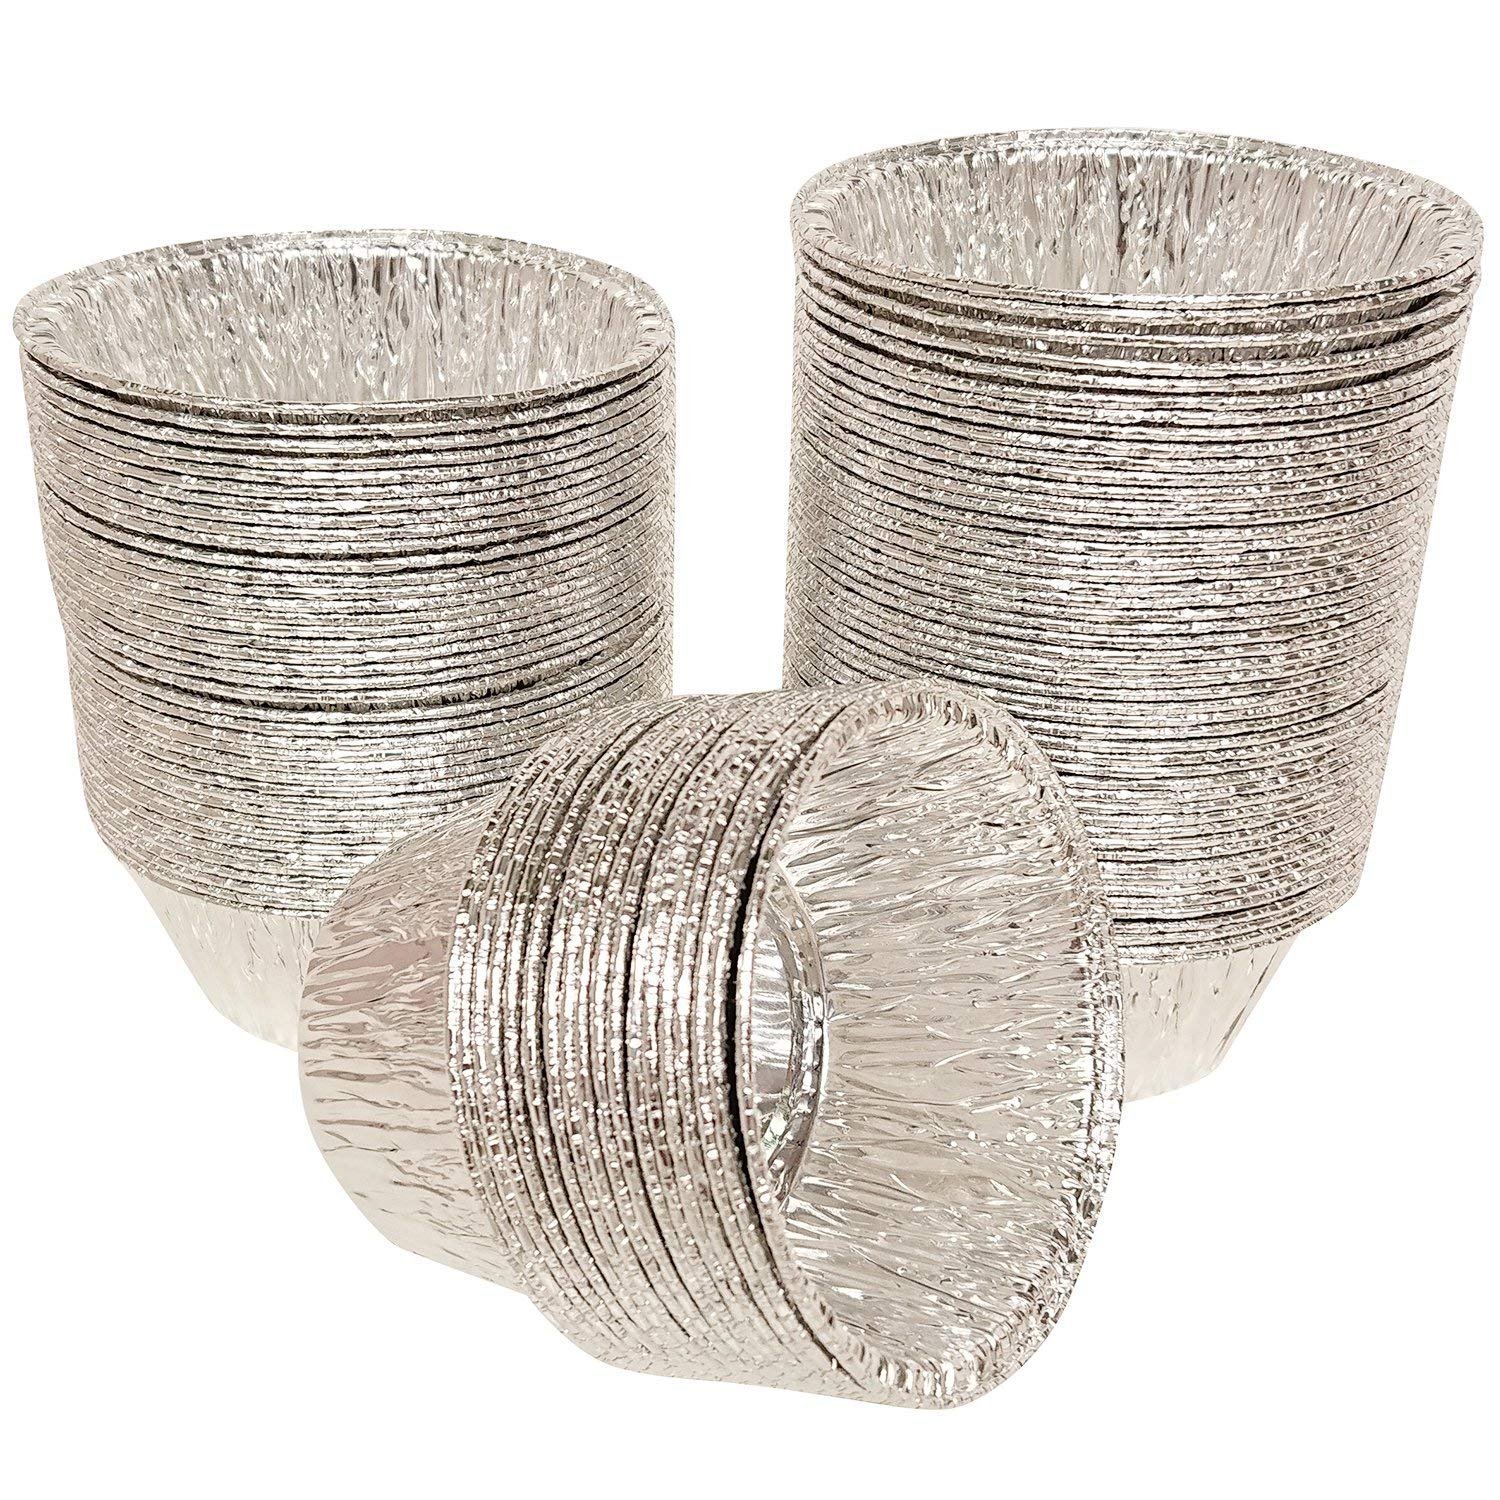 Axe Sickle 150Pcs Disposable Baking Cups Tin Foil Pans Cups, 4 oz Aluminum Foil Cupcake Bowl Pans, Muffin Ramekin Utility Cup, Hot Cold Freezer Roasting Baking Oven Safe.